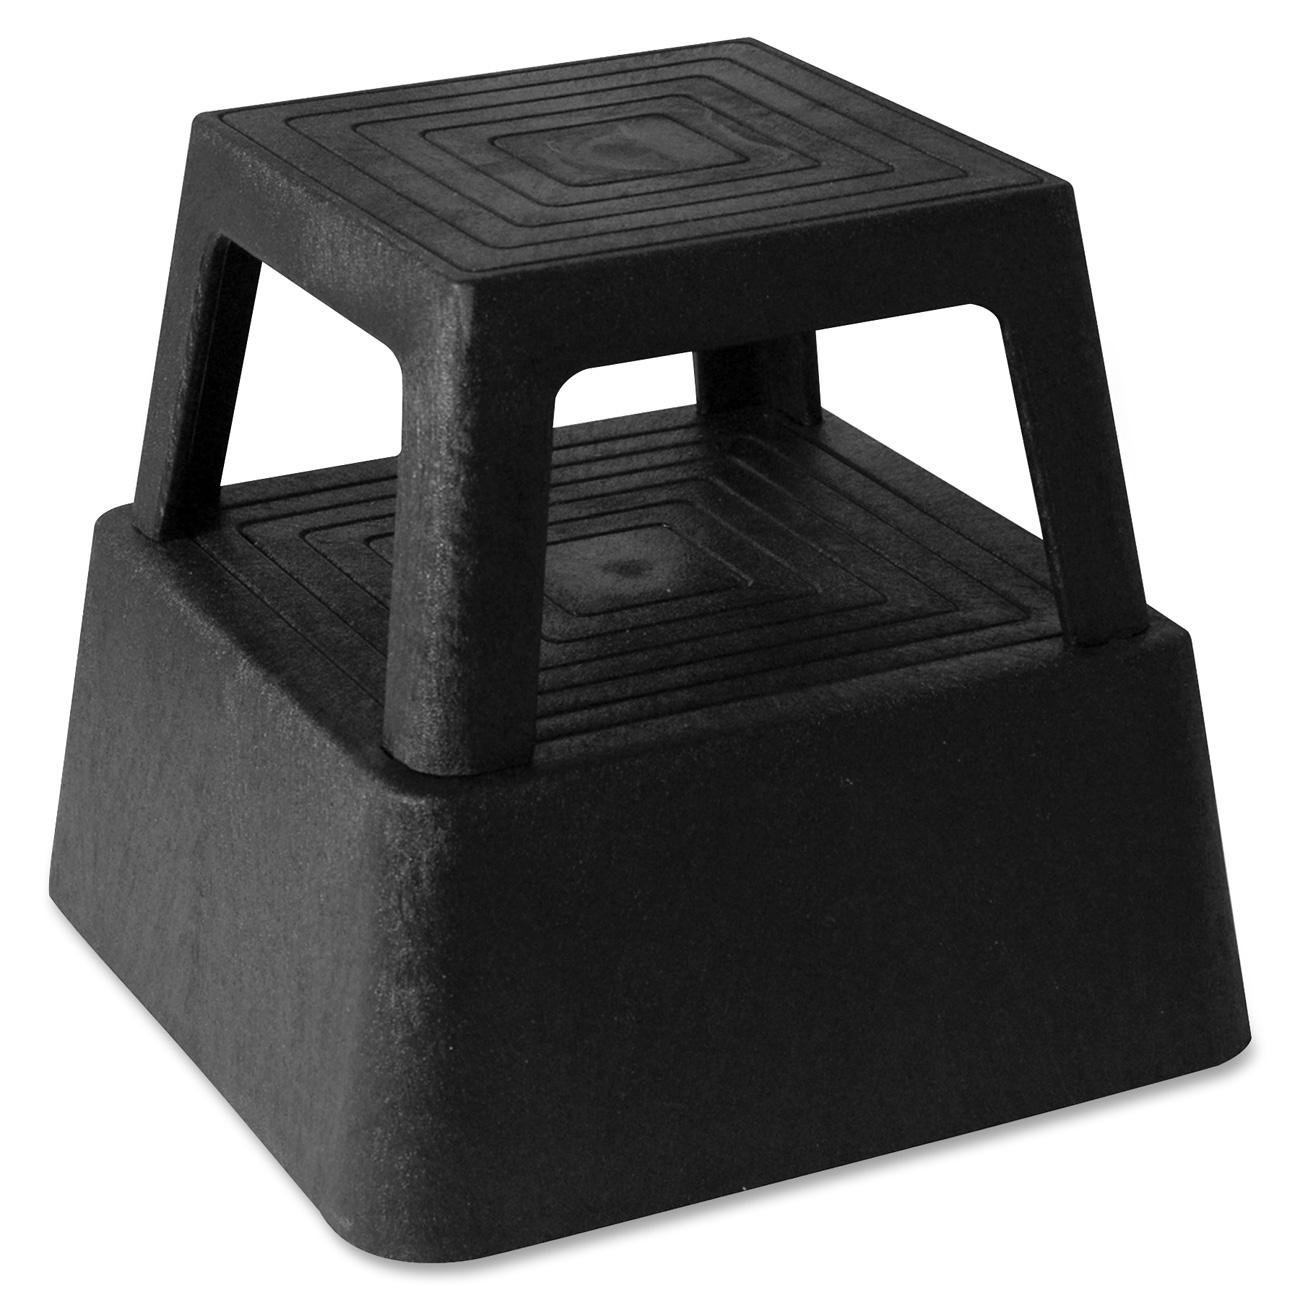 Genuine Joe GJO02428 Structural Plastic Step Stool with 4 Casters 350 lbs Capacity 14.3  Length x 14.3  Width x 13  Height Black Stepladders ...  sc 1 st  Amazon.com & Genuine Joe GJO02428 Structural Plastic Step Stool with 4 Casters ... islam-shia.org